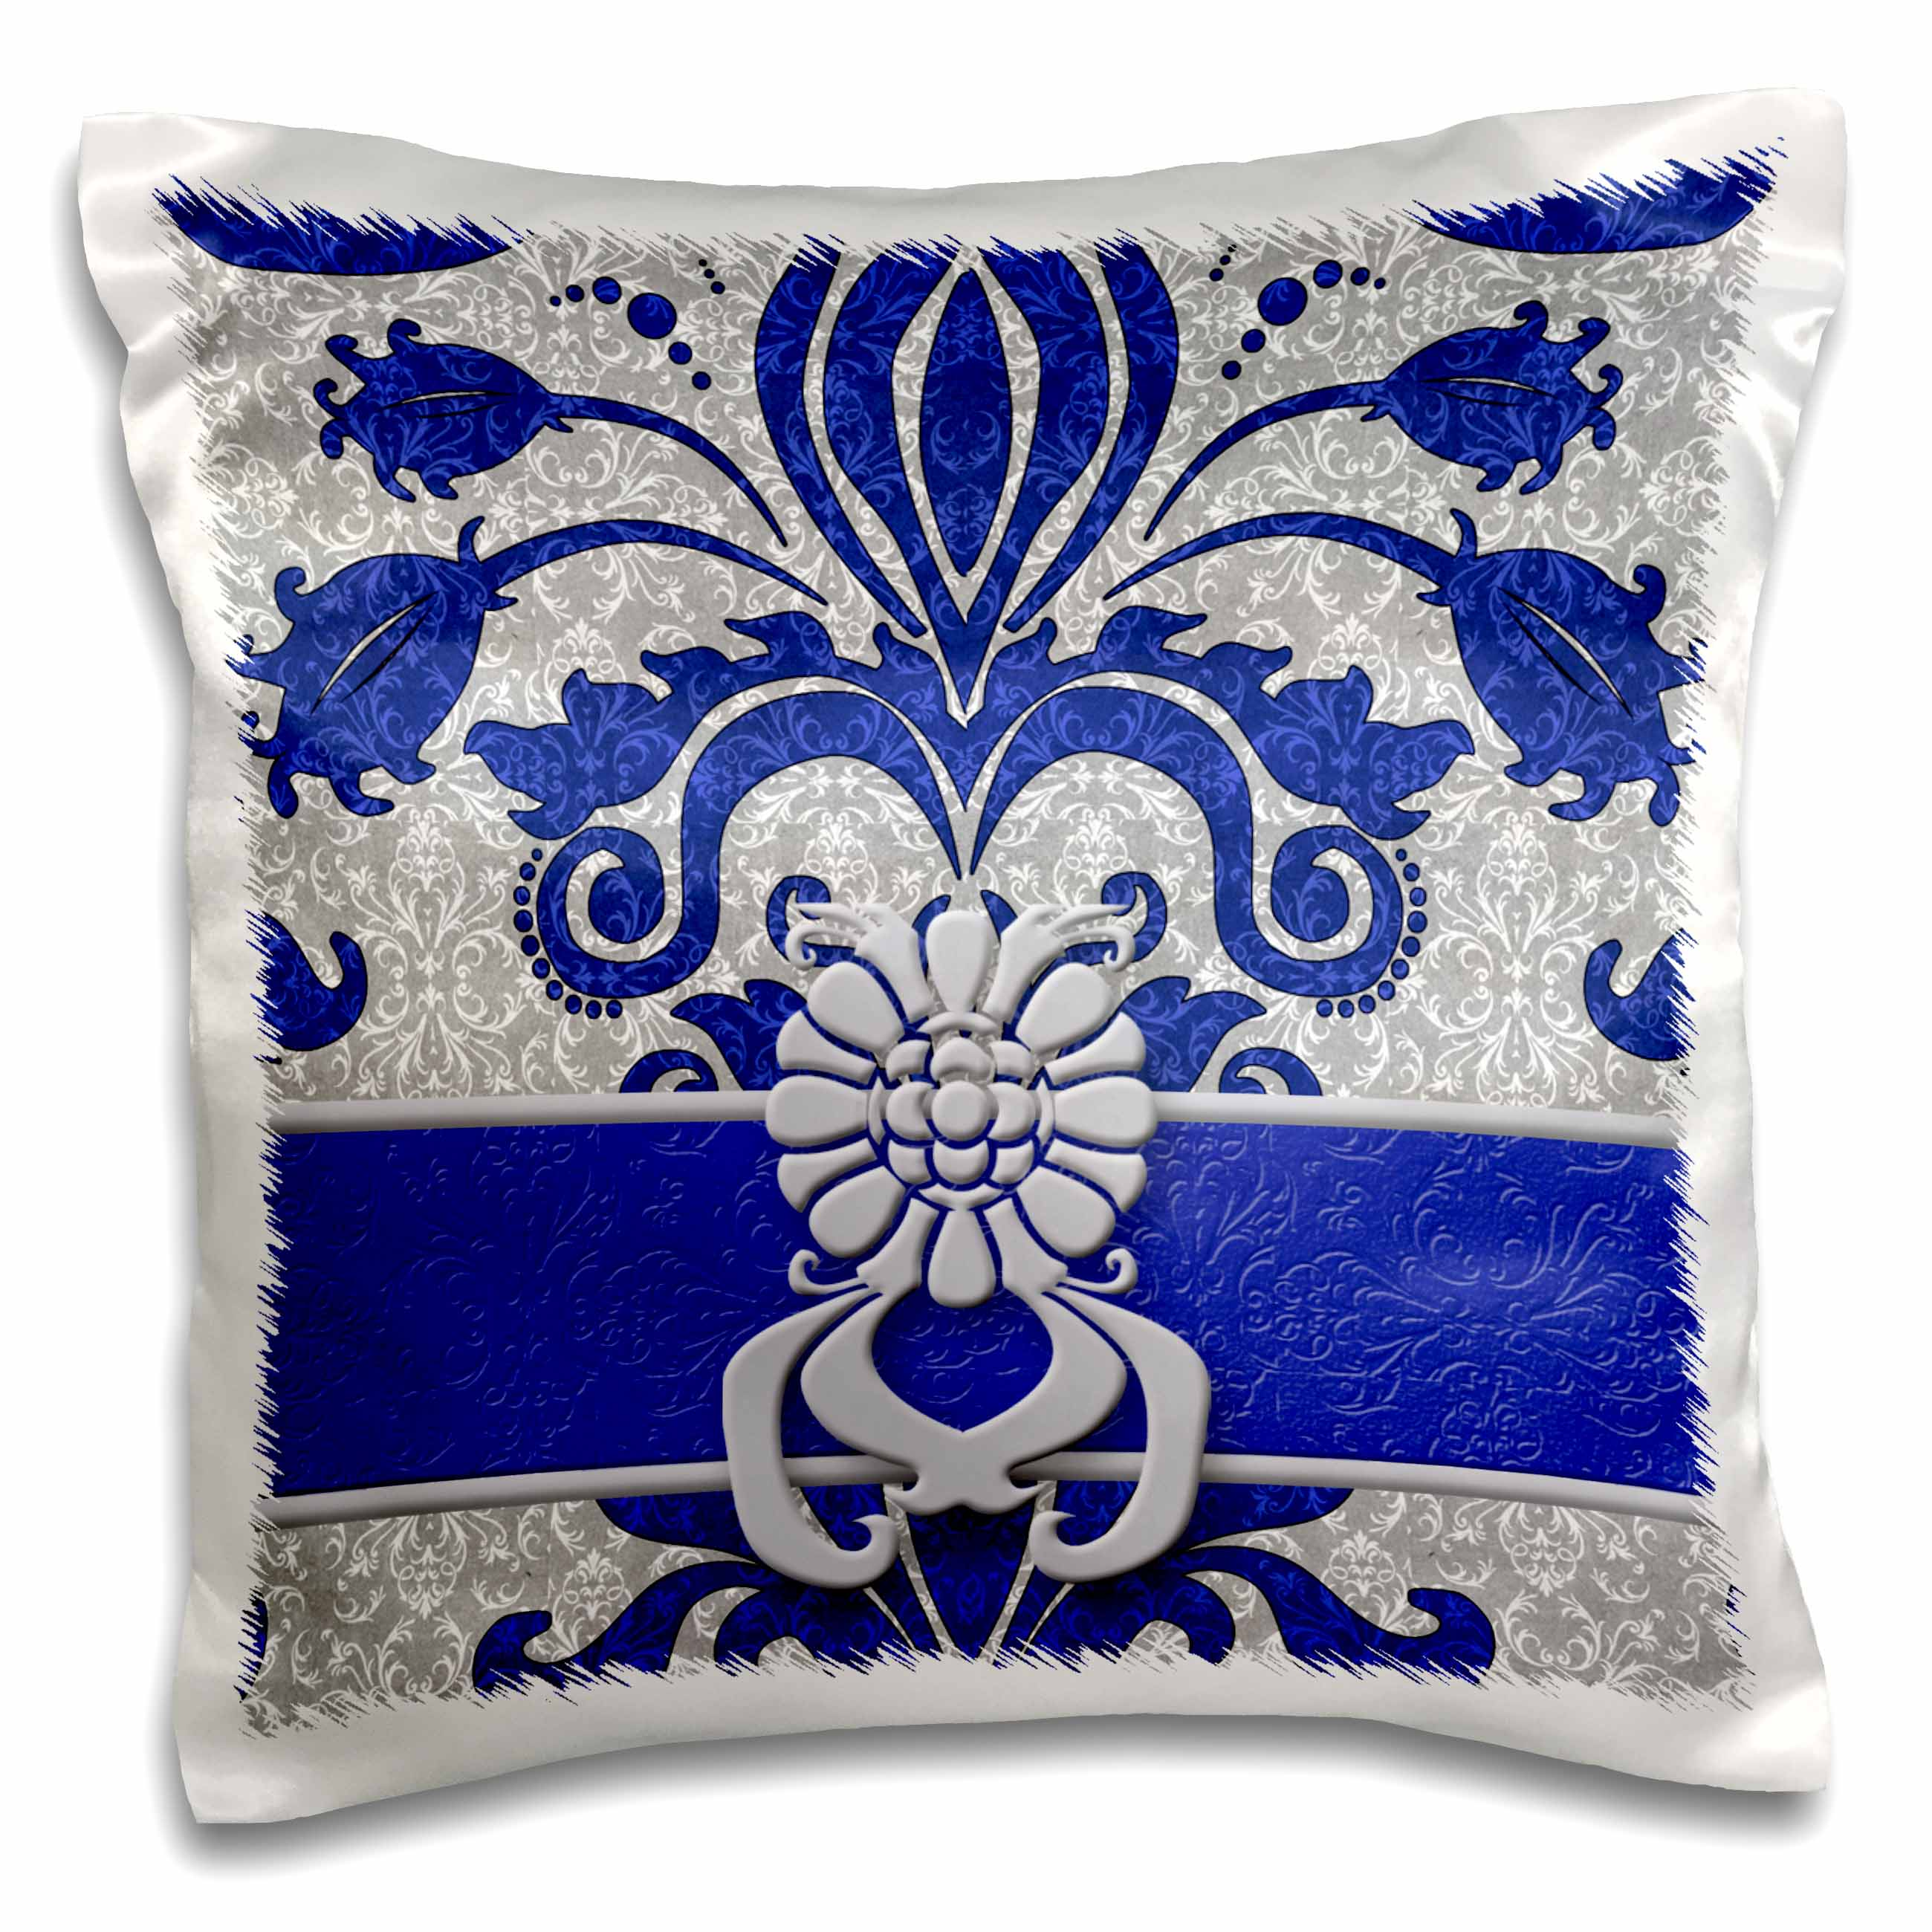 3dRose Damask Royal Blue and Silver - Pillow Case, 16 by 16-inch